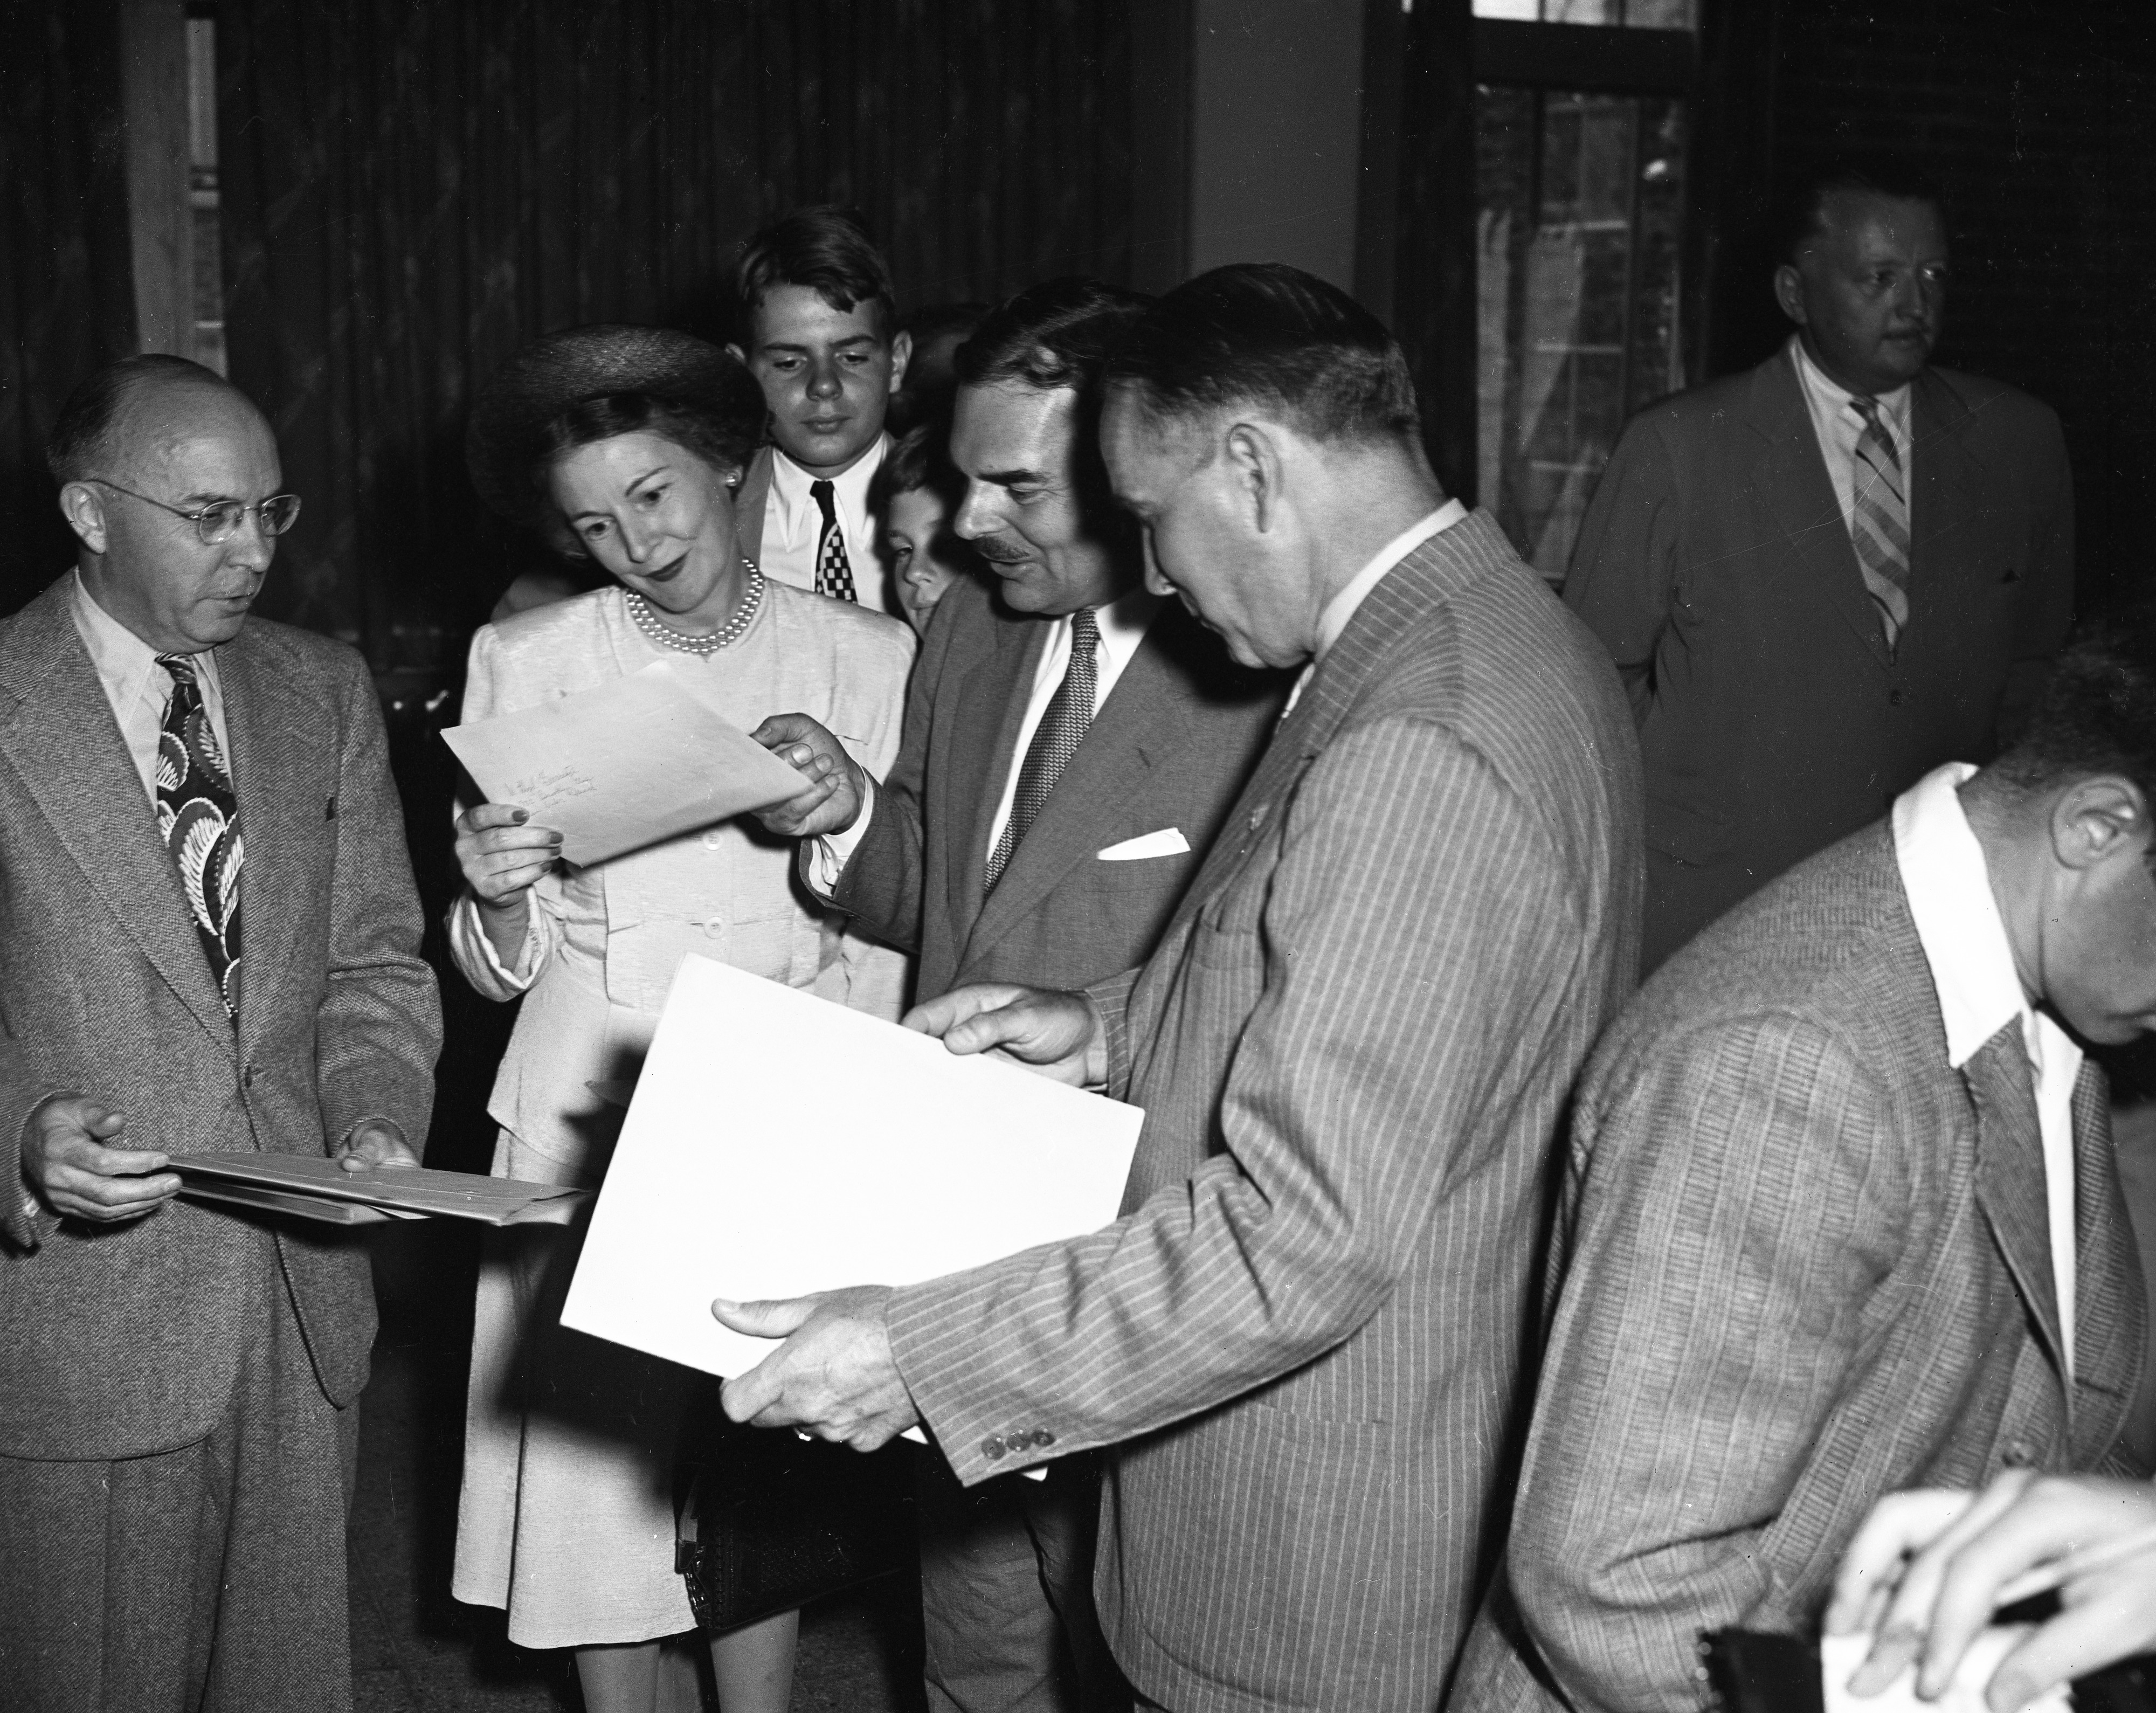 Gov. Thomas E. Dewey and Frances Hutt Dewey Visit University of Michigan Campus, July 1947 image